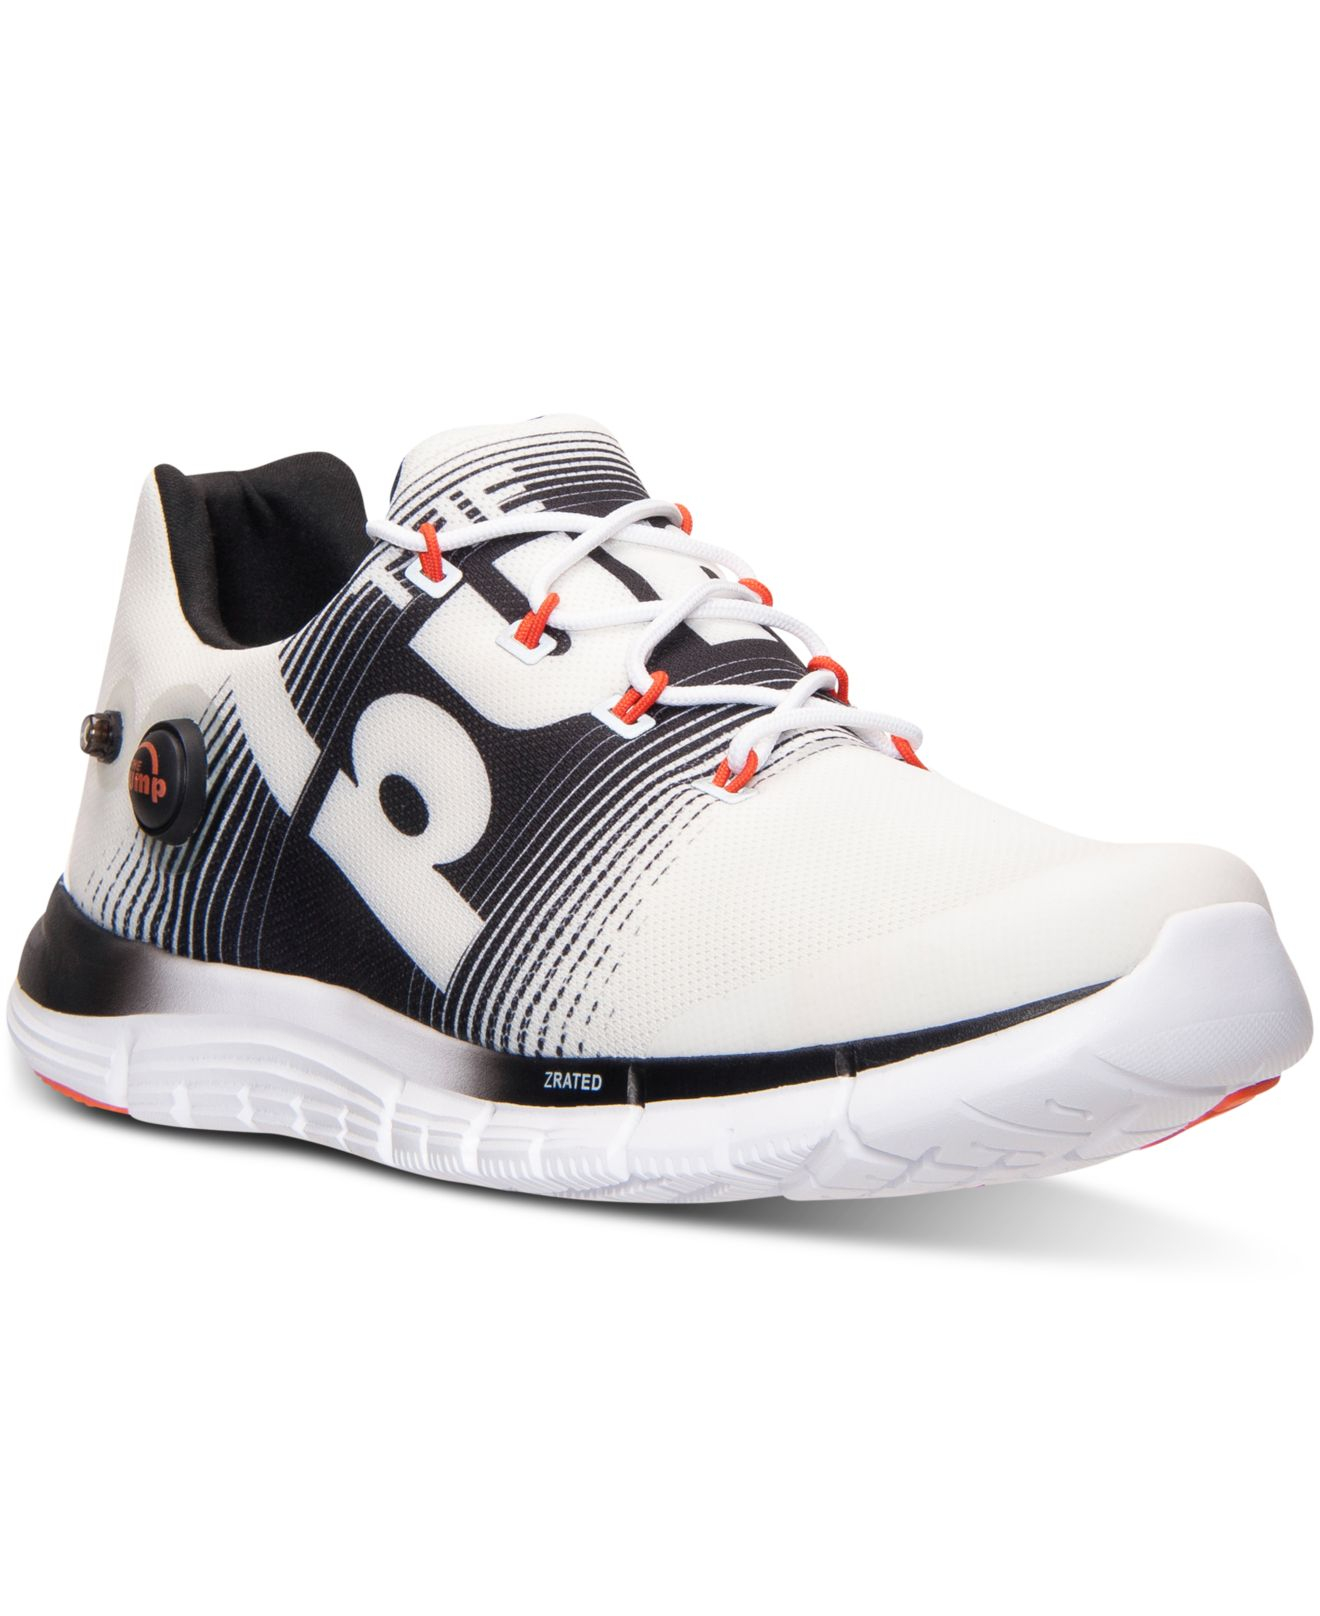 5be8af5a307 Lyst - Reebok Men s Zpump Fusion Running Sneakers From Finish Line ...